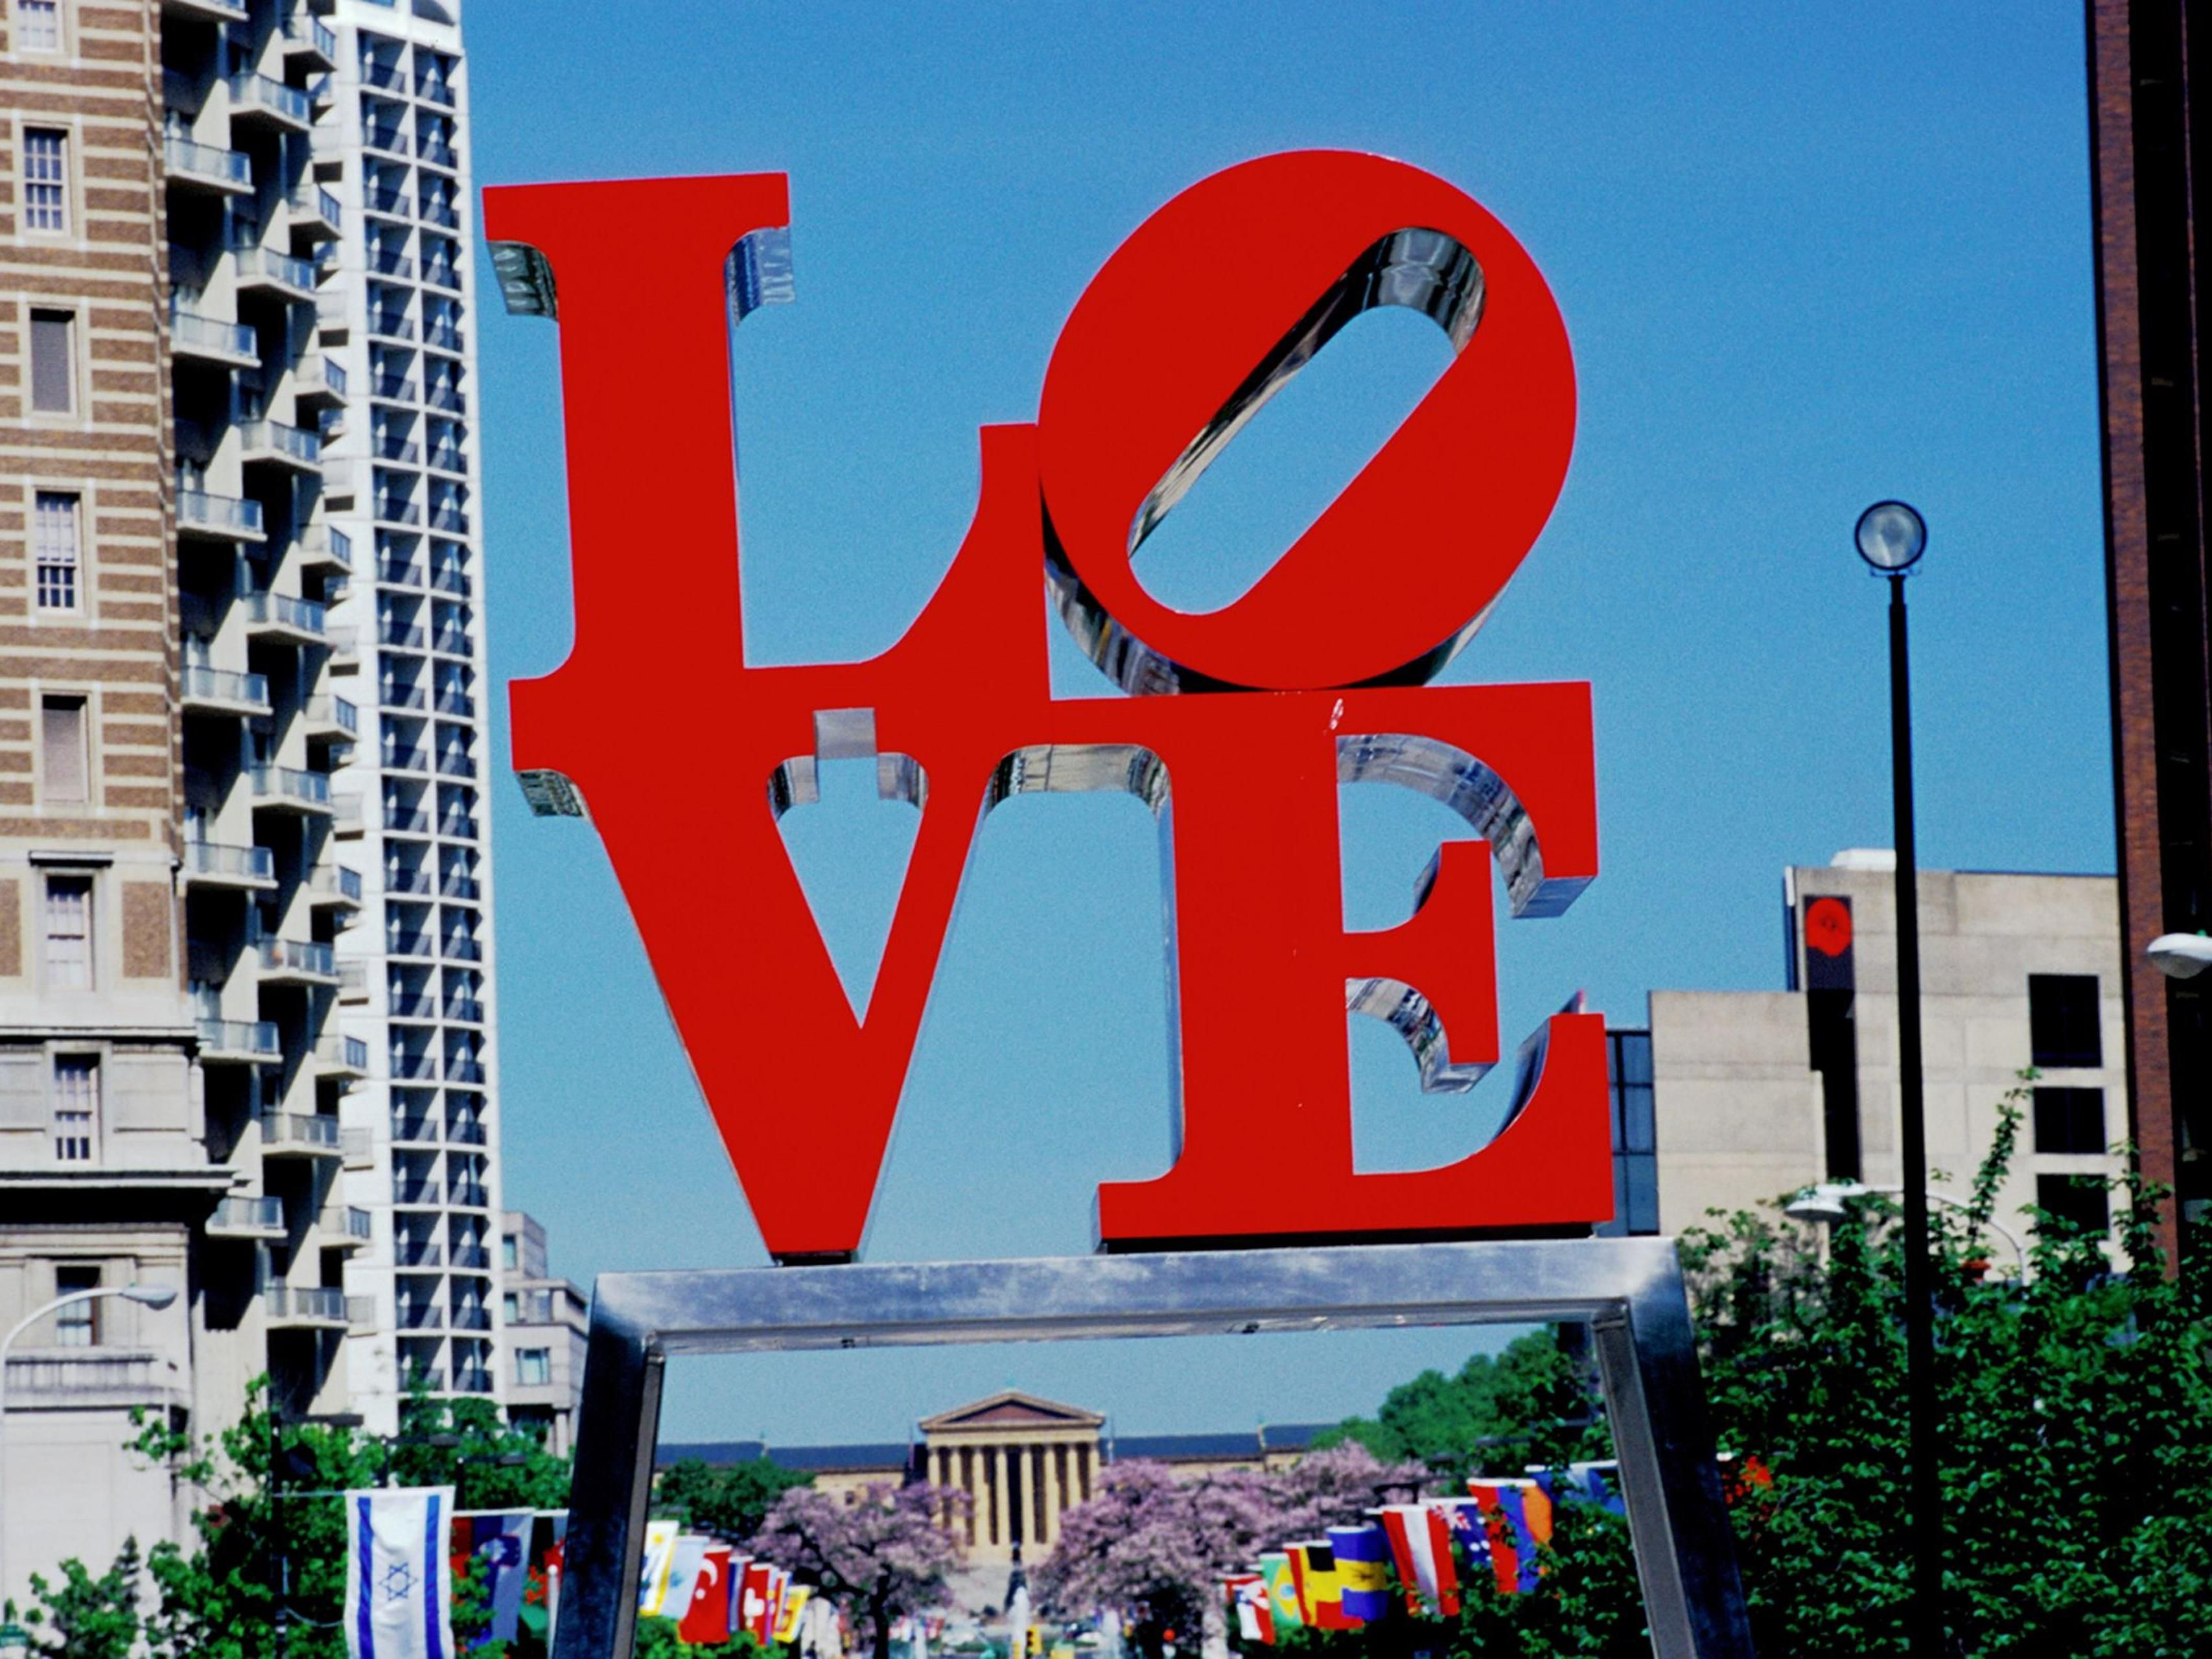 We are only 4 blocks away from Love Park!